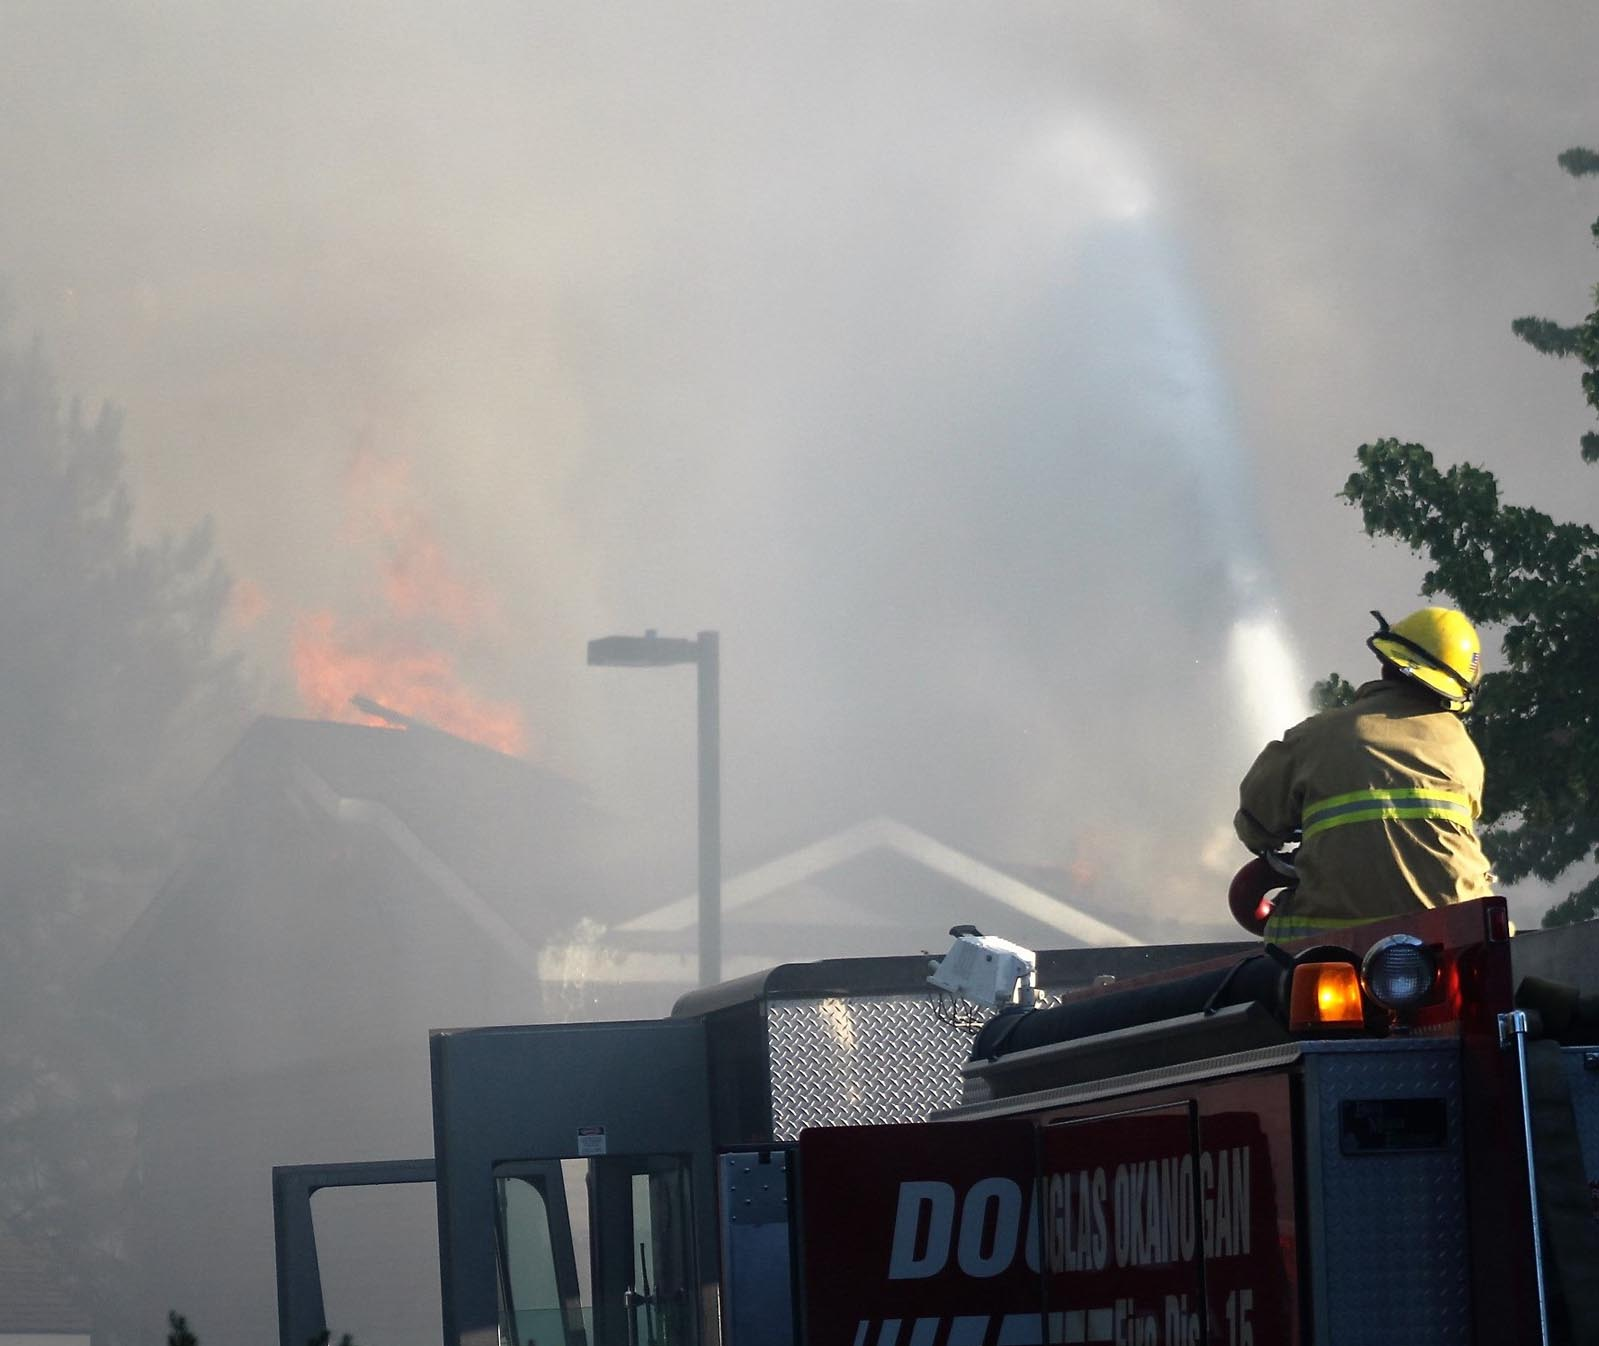 Flames can be seen on the roof of an apartment building in front of a firefighter manning the water cannon.